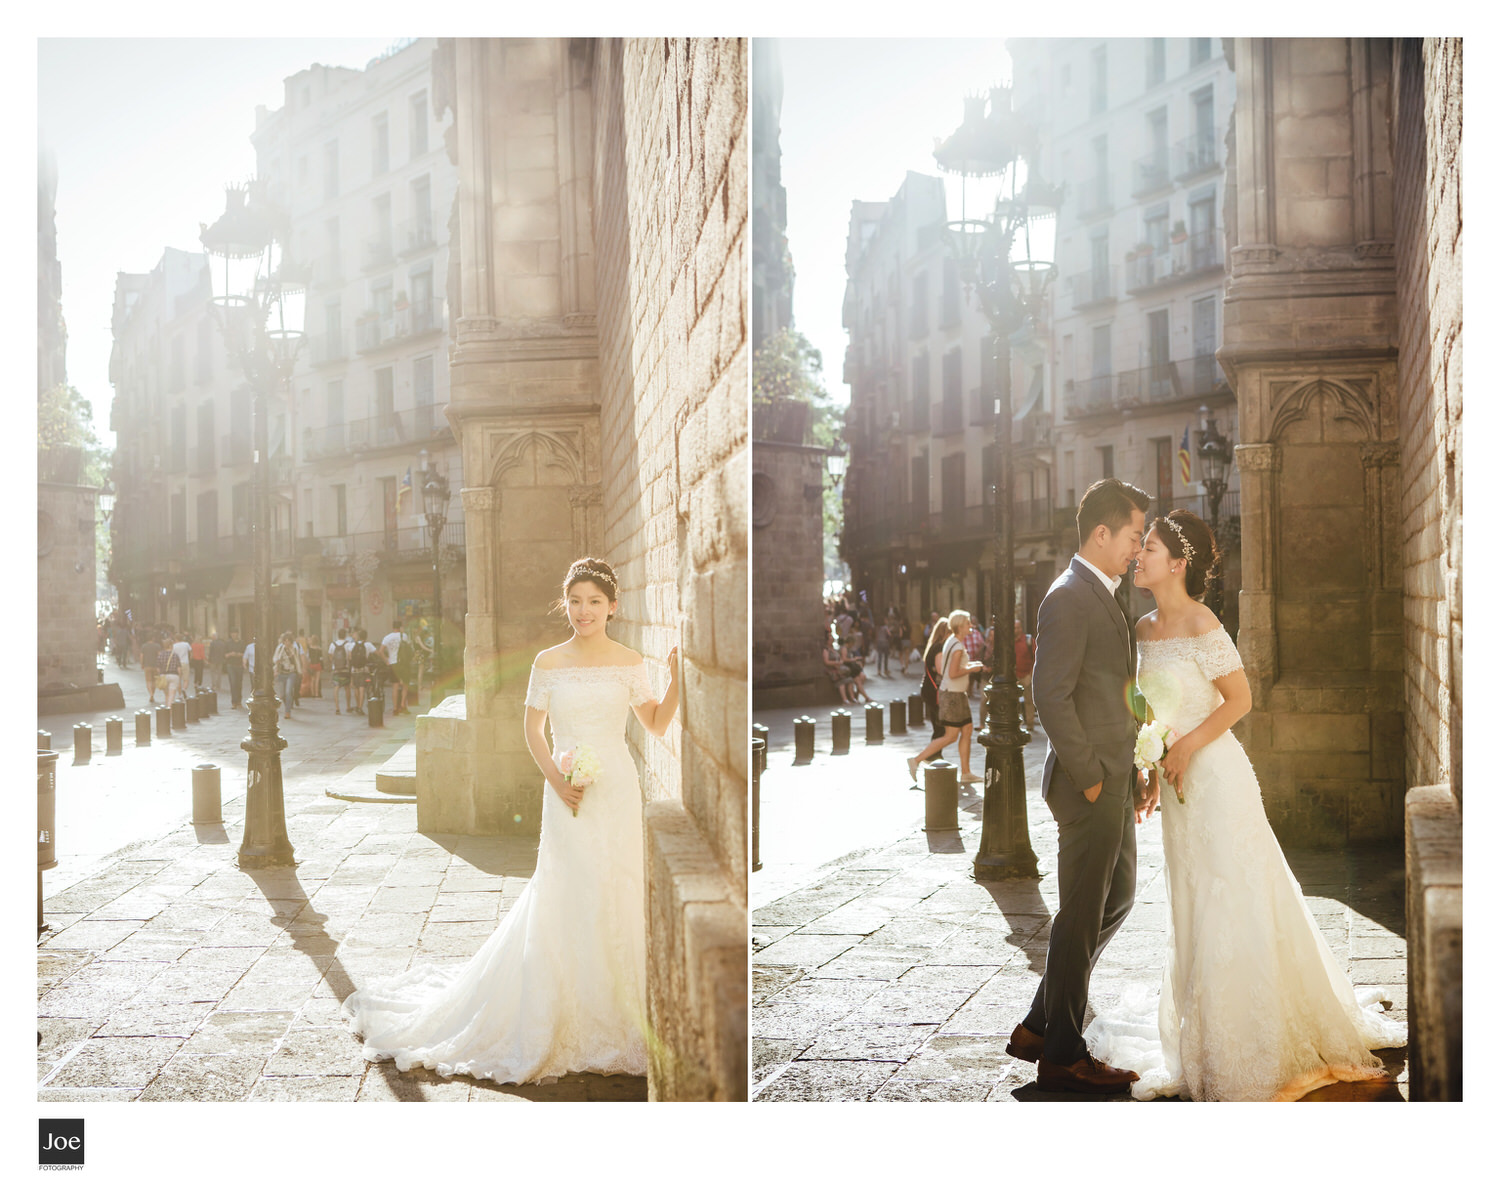 joe-fotography-35-barcelona-santa-maria-del-mar-pre-wedding-linda-colin.jpg